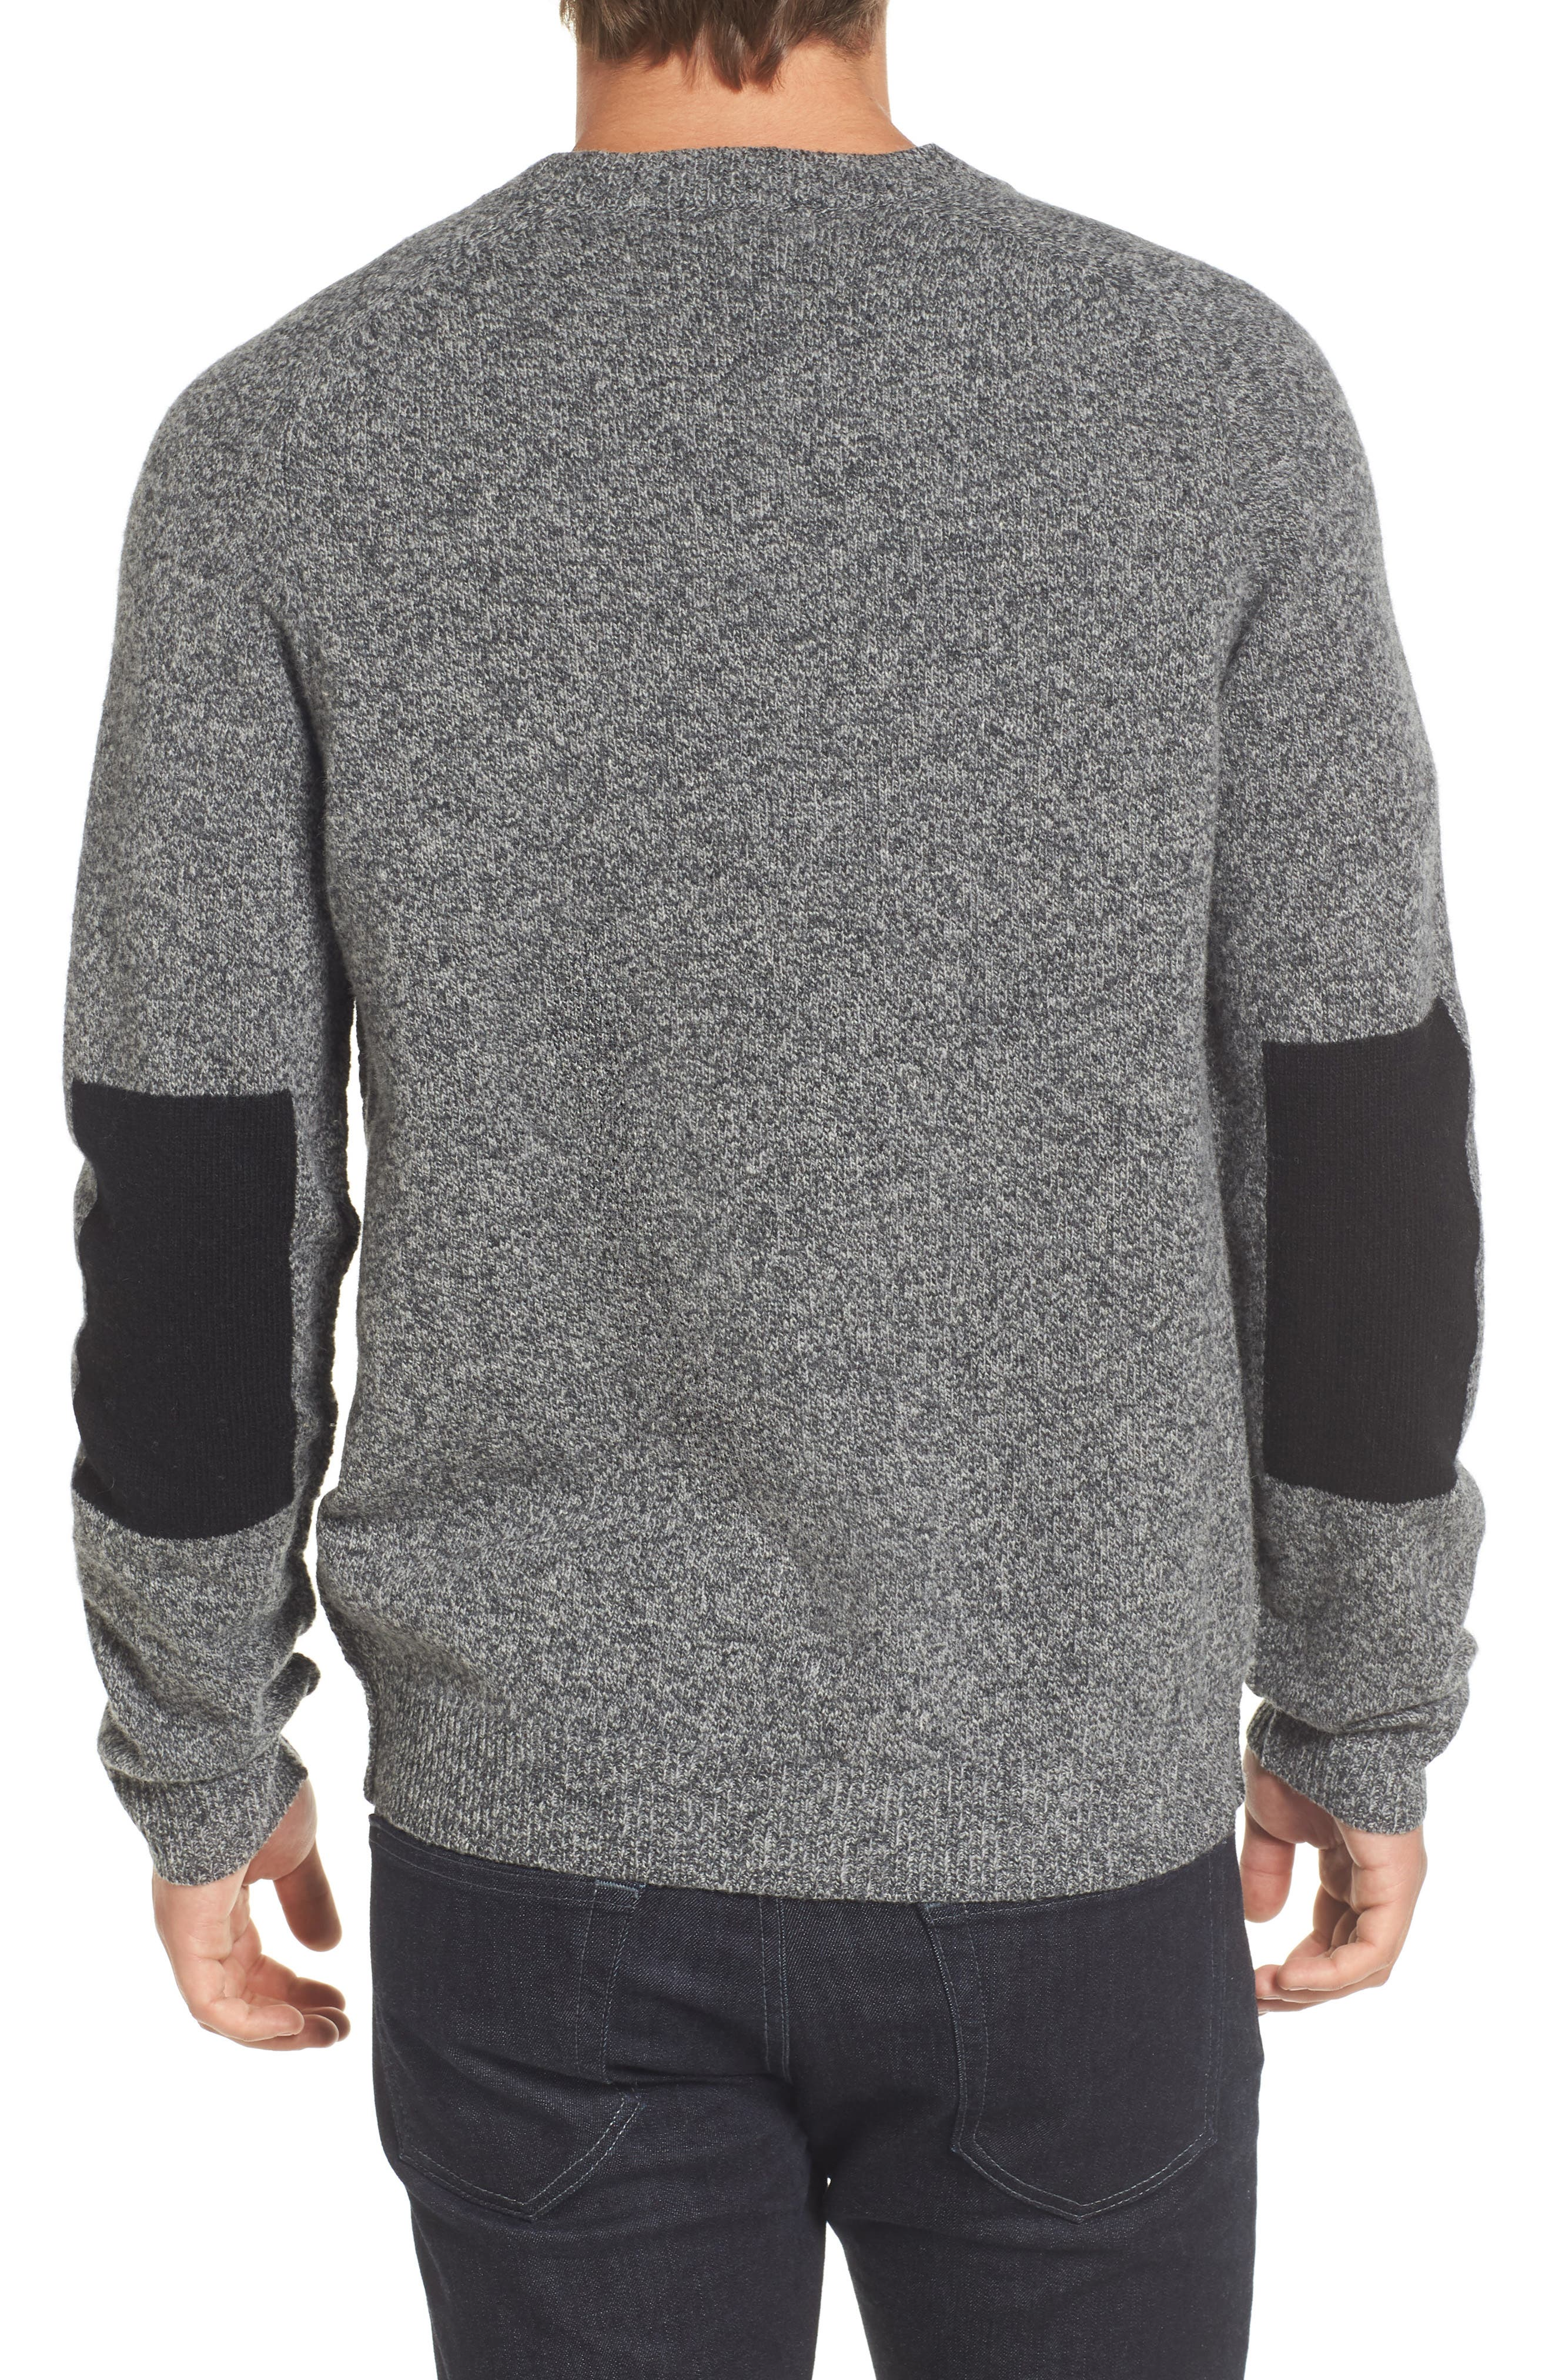 Elbow Patch Sweater,                             Alternate thumbnail 2, color,